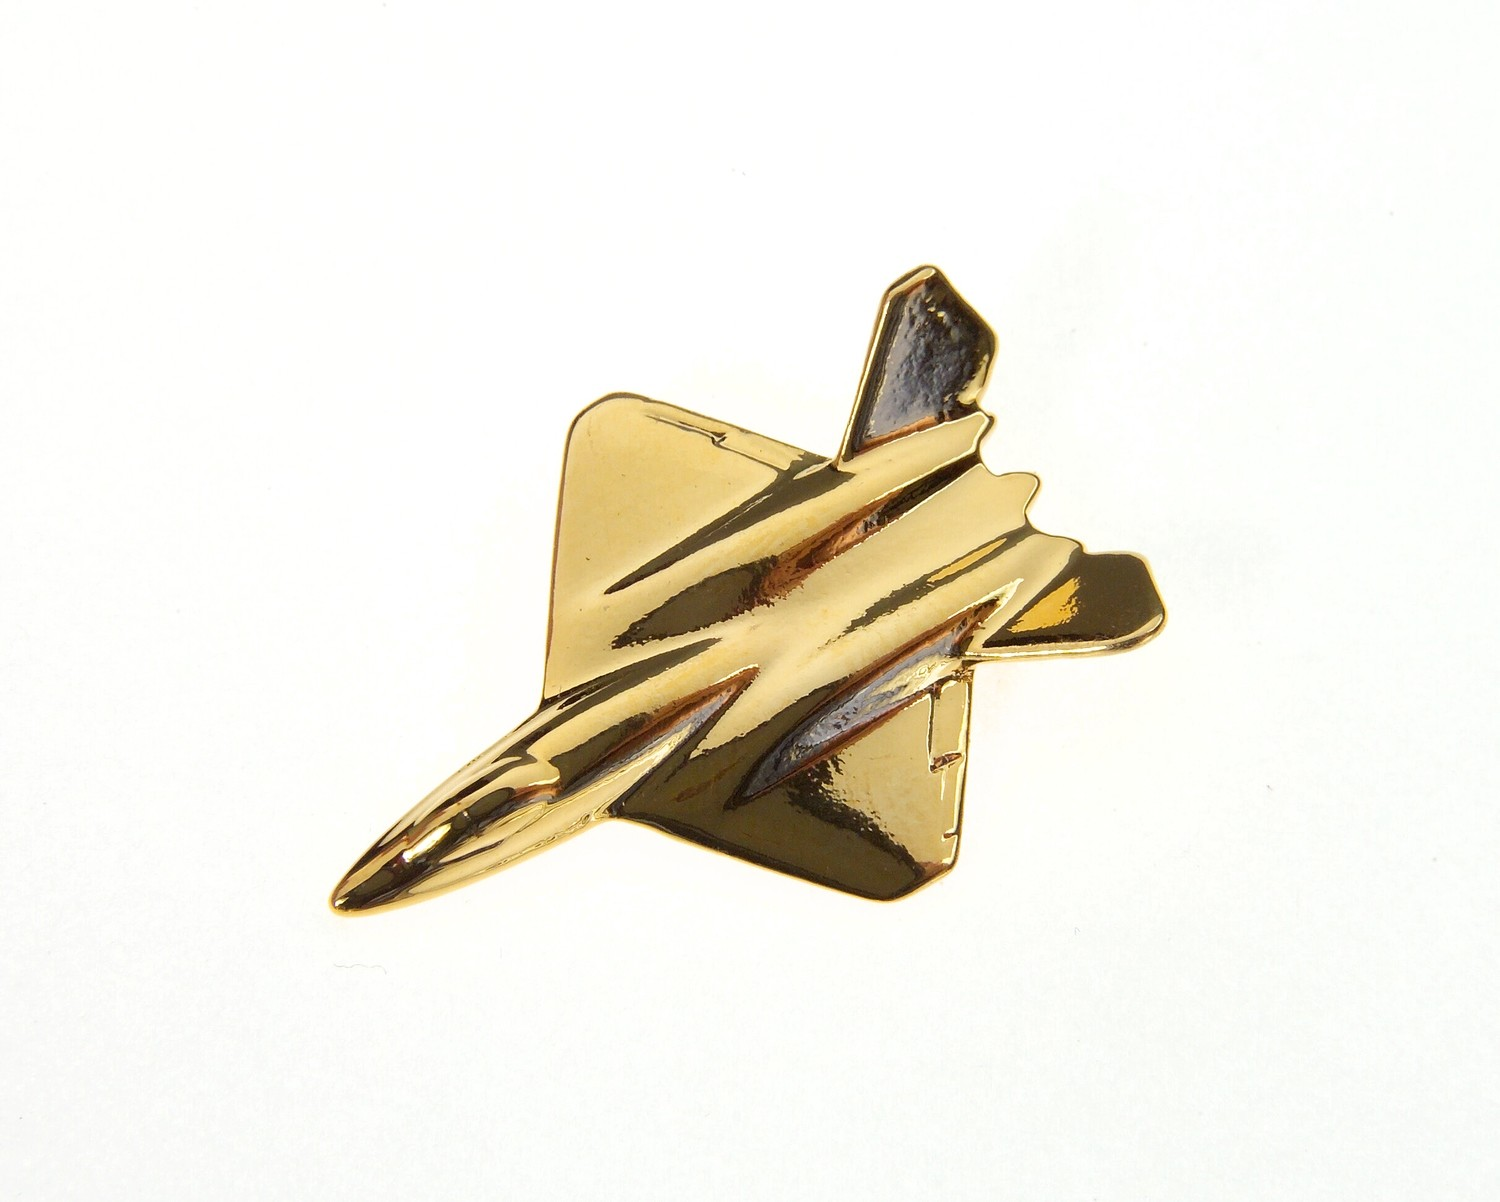 YF23 Gold Plated Tie / Lapel Pin